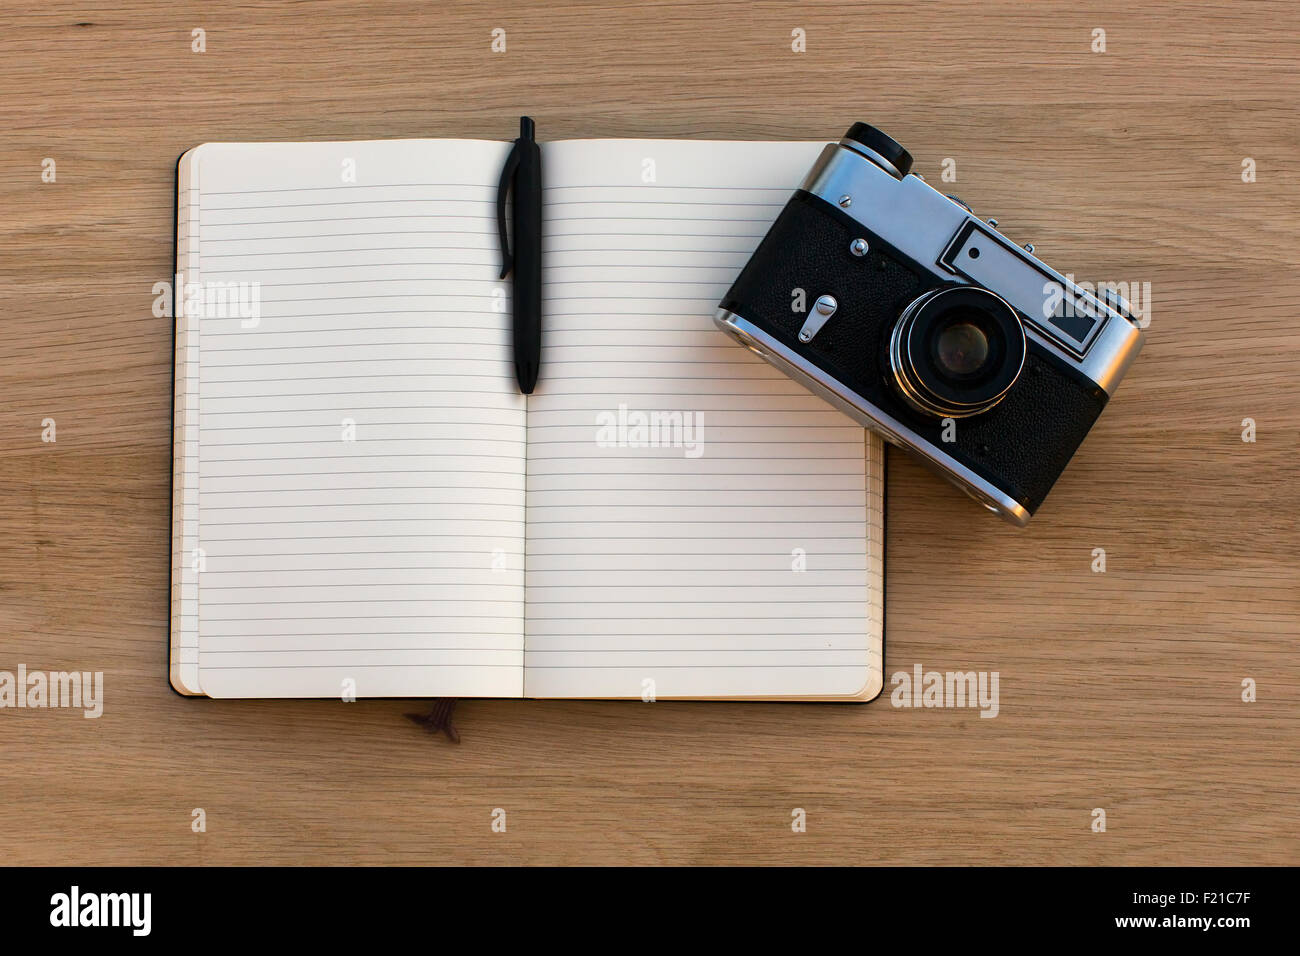 Open notebook with a pen and a vintage film camera, top view on wooden texture of the table. Stock Photo